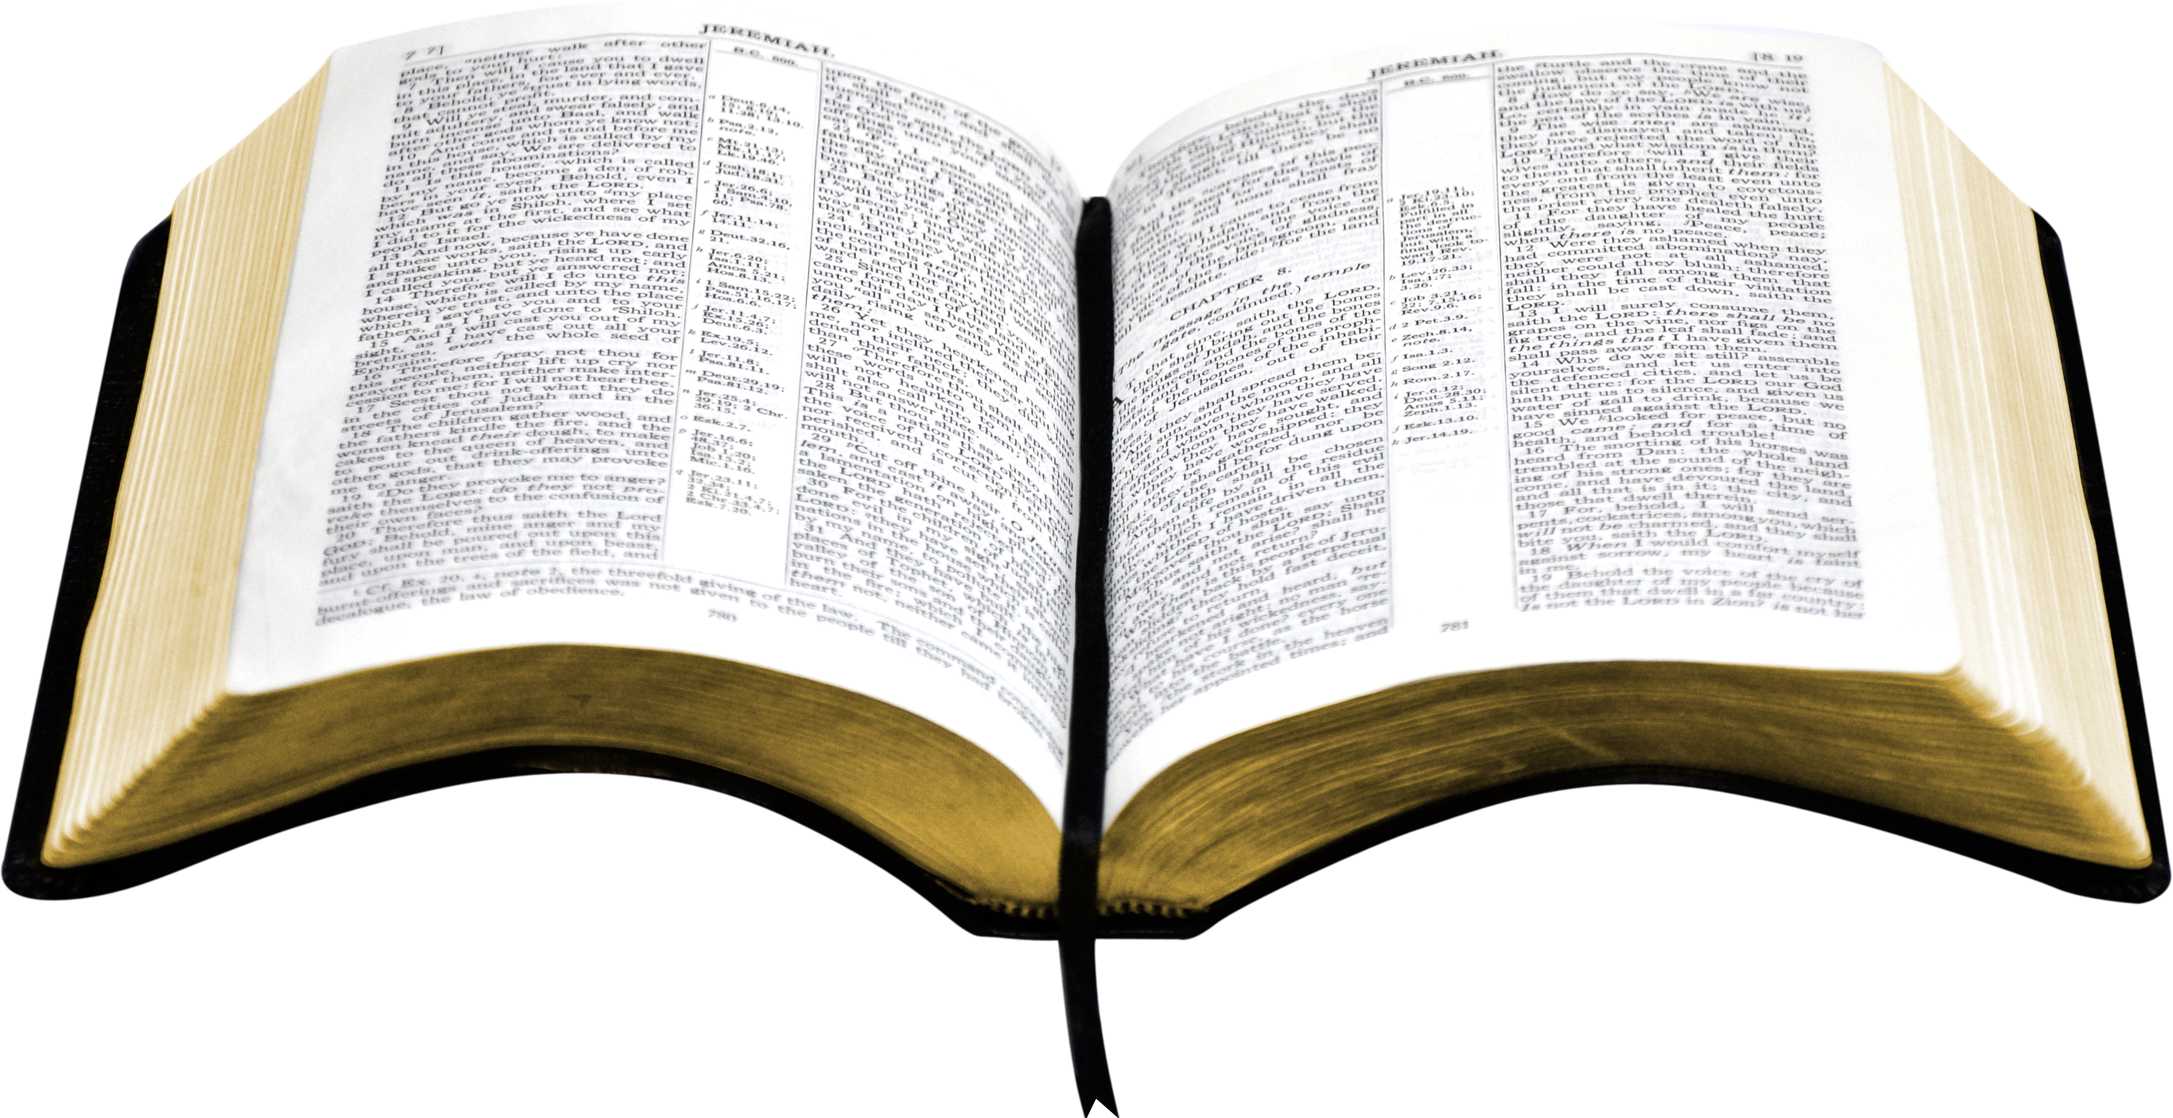 Free download of Holy Bible PNG Image